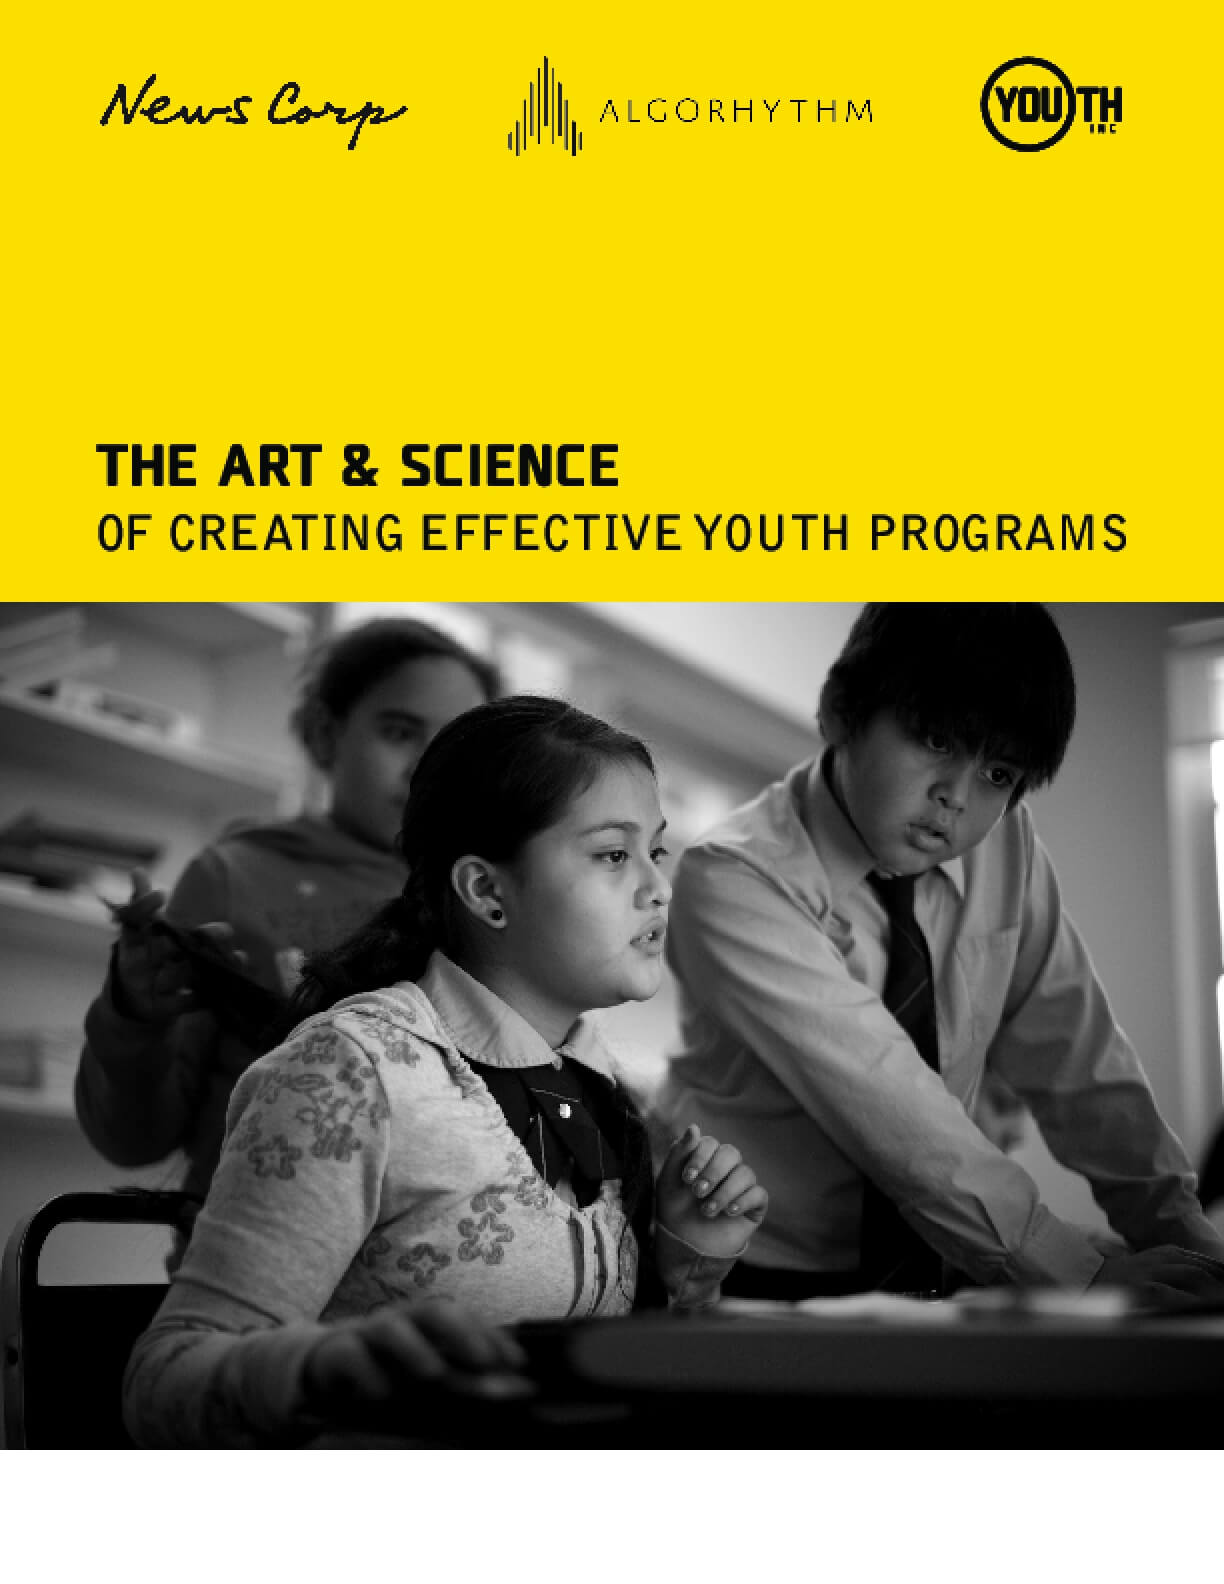 The Art & Science of Creating Effective Youth Programs